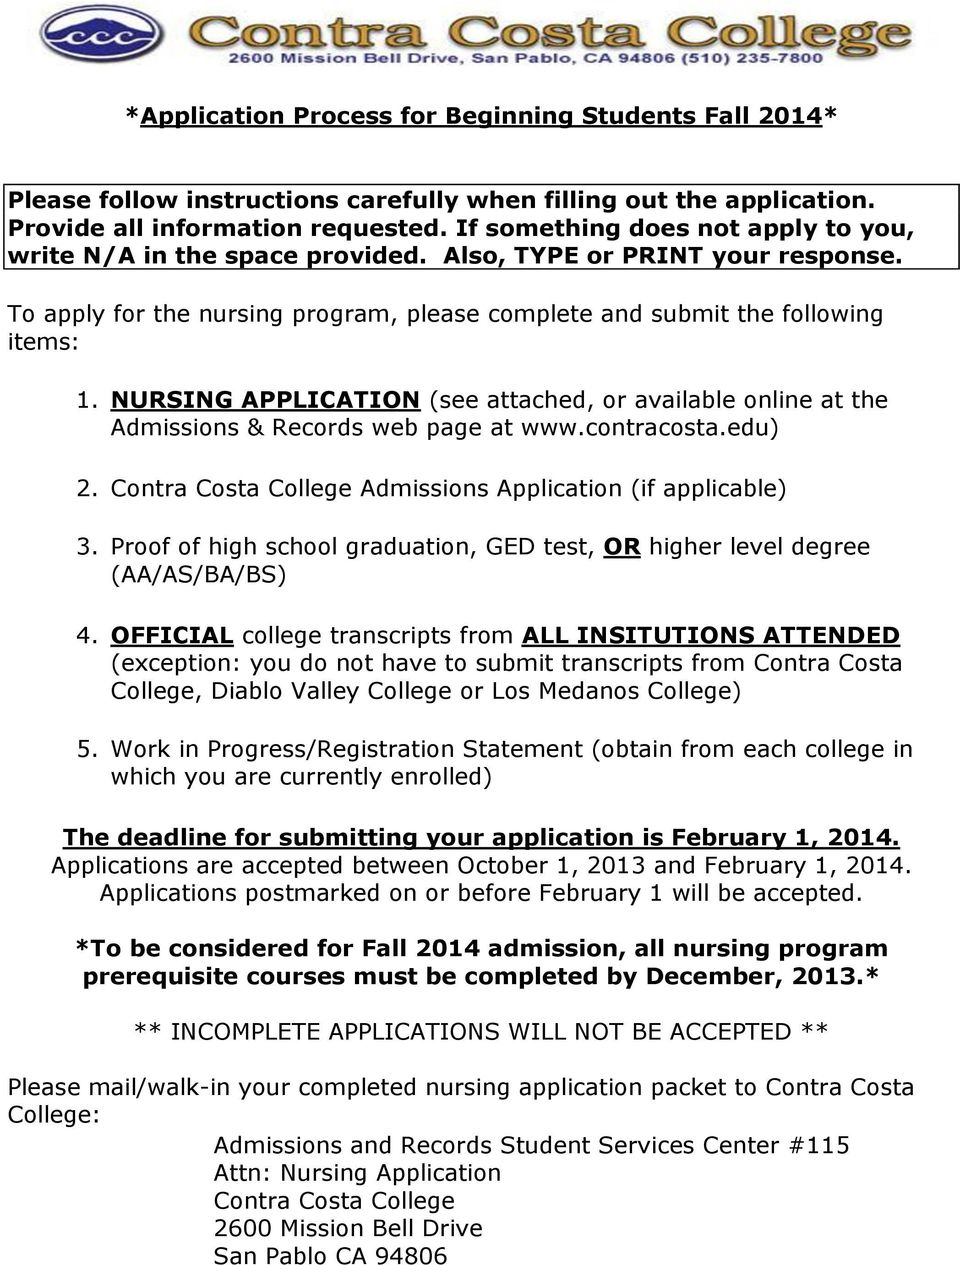 NURSING APPLICATION (see attached, or available online at the Admissions & Records web page at www.contracosta.edu) 2. Contra Costa College Admissions Application (if applicable) 3.